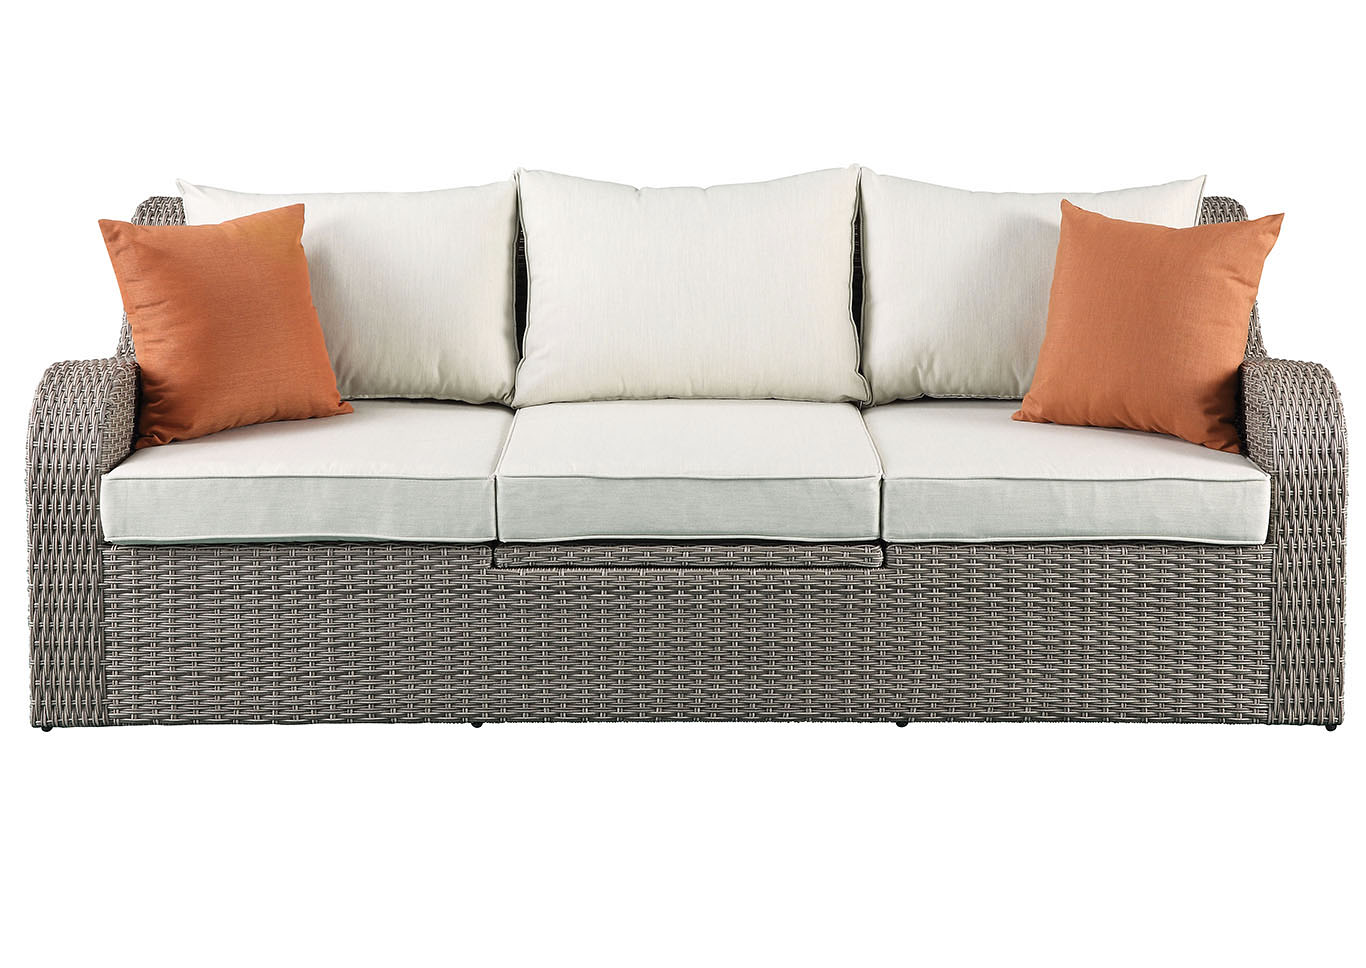 Salena Beige Fabric & Gray Wicker Patio Sofa & Ottoman,Acme